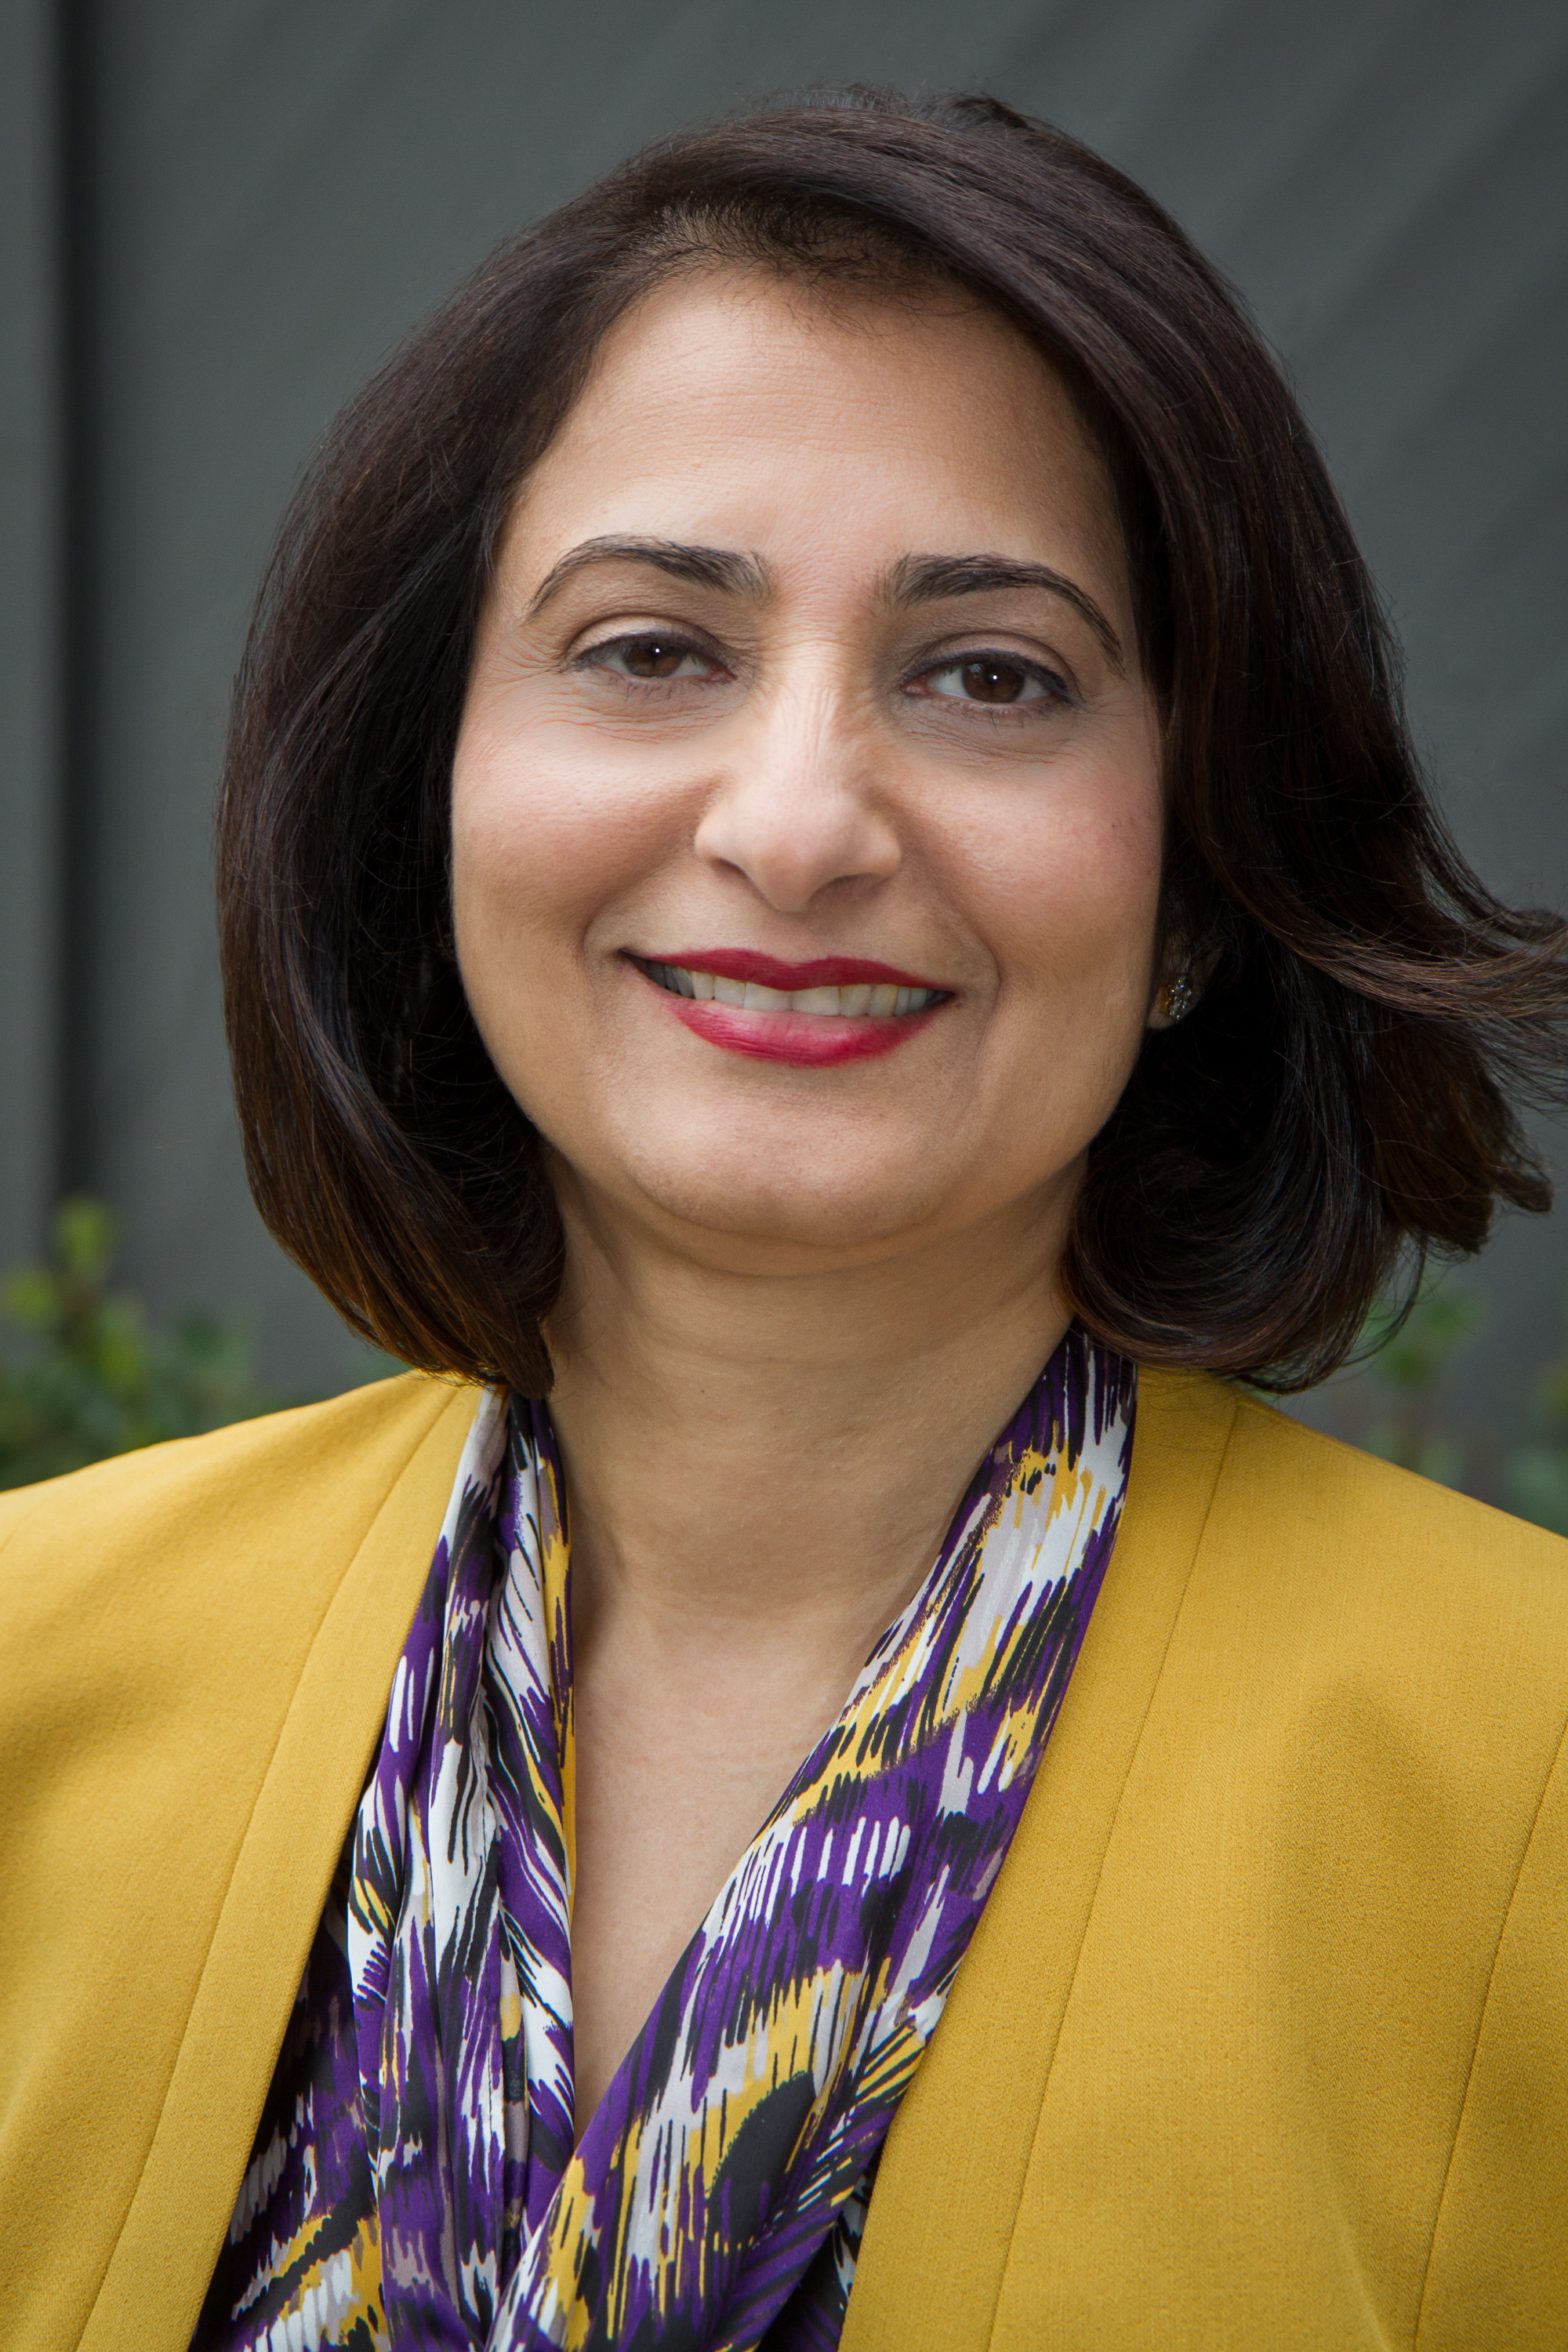 Global Upside's co-founder and COO Gita Bhargava